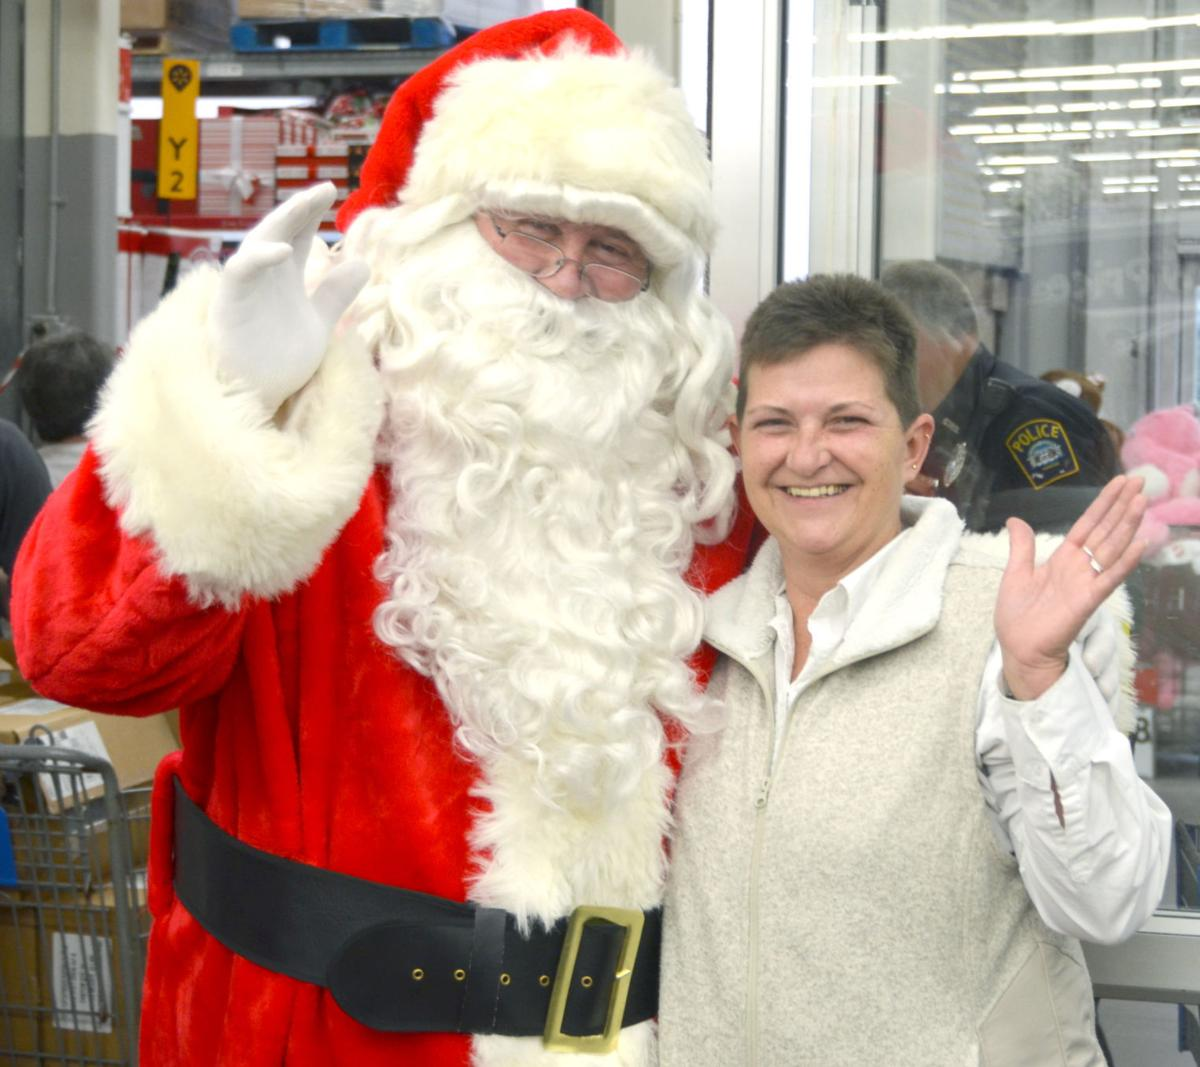 Christmas Comes Early At Shop With A Cop | Local News ...